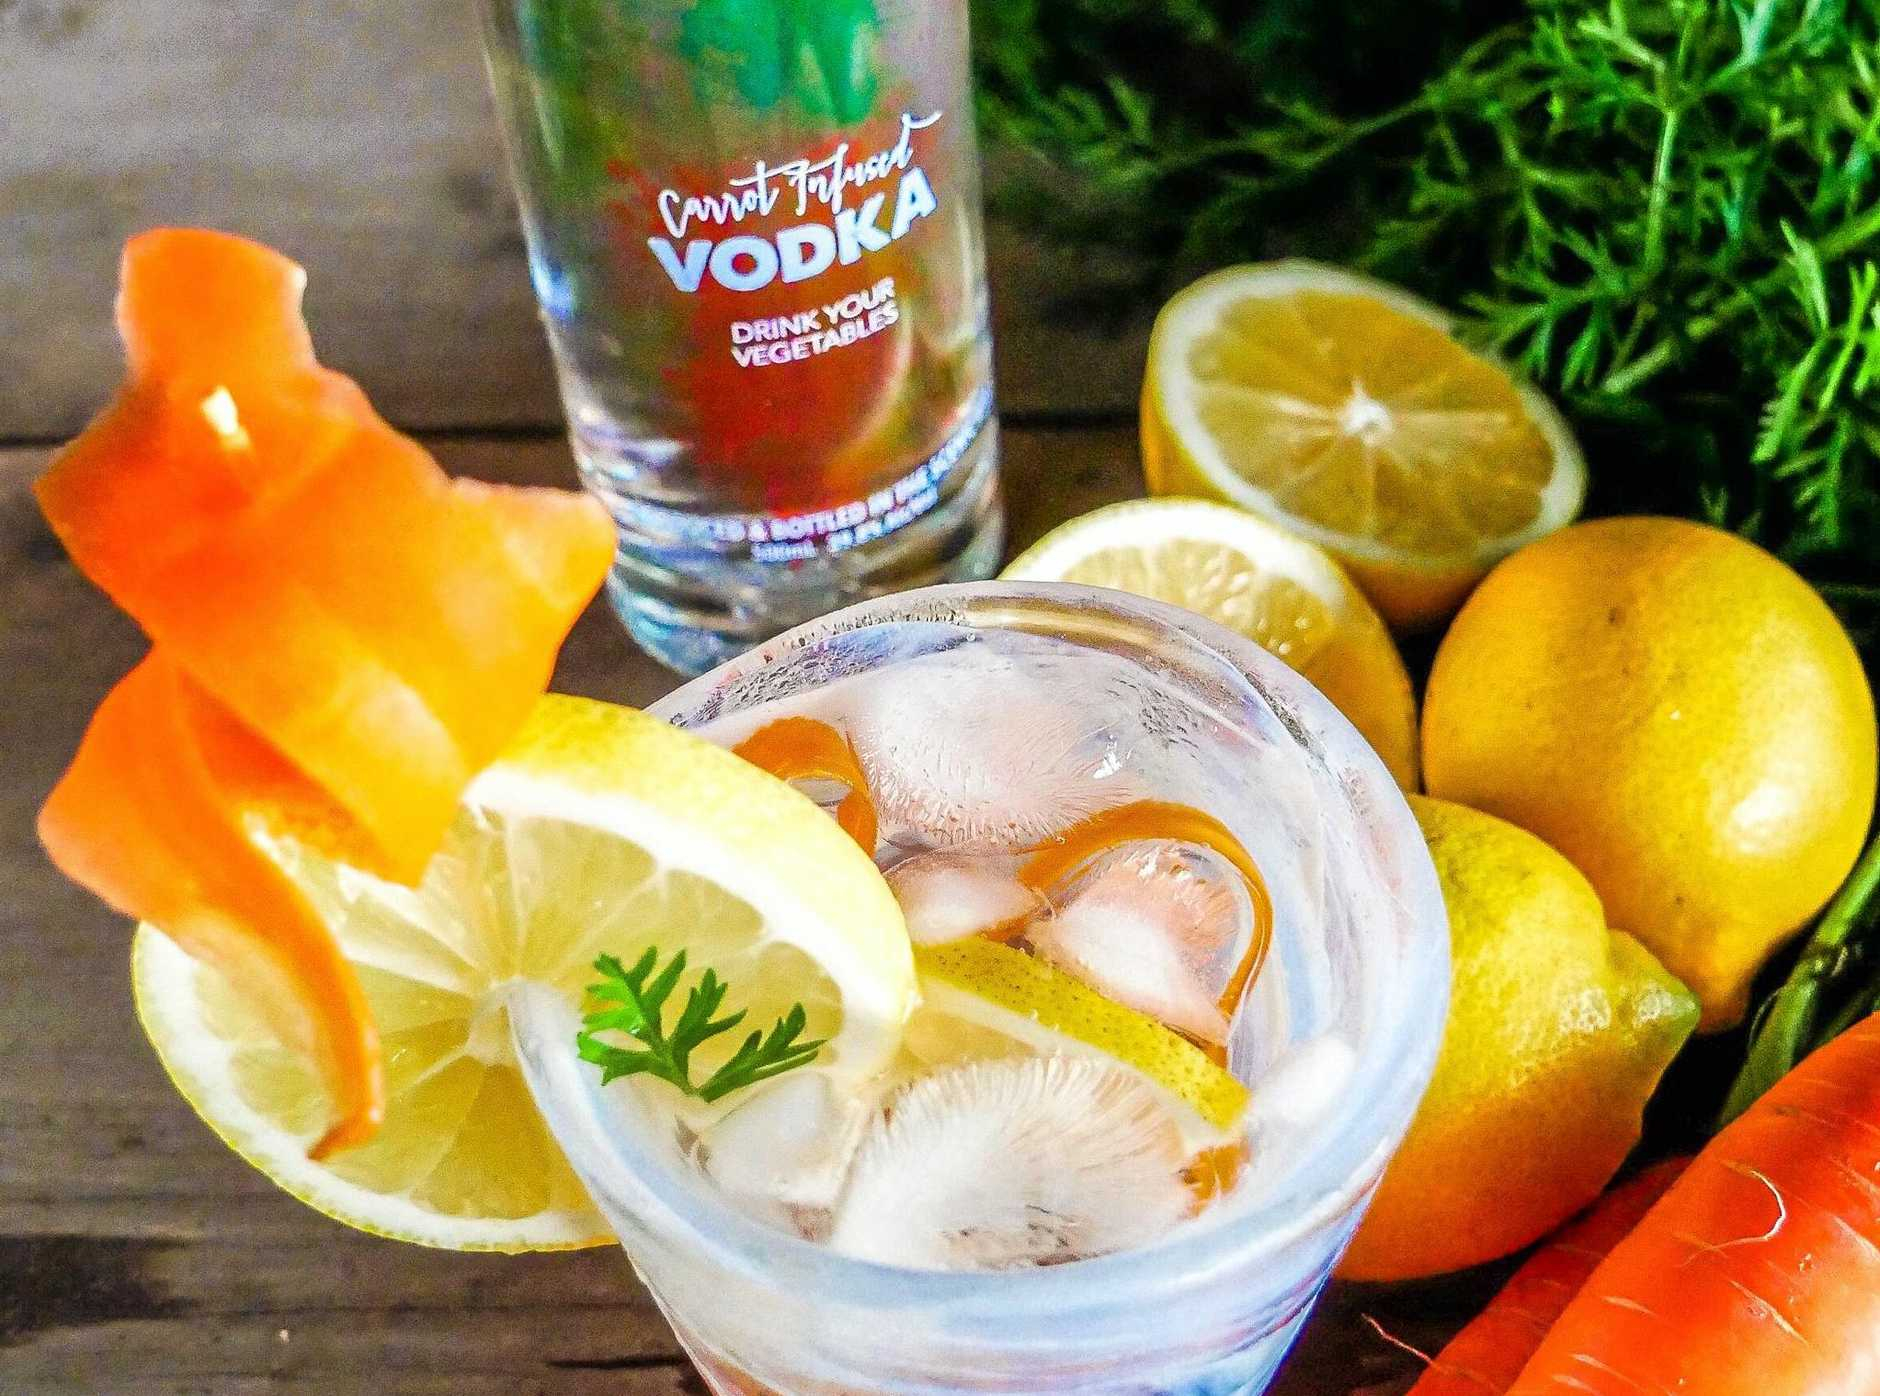 The carrot vodka can be used in a vodka soda or as the base of a Bloody Mary.